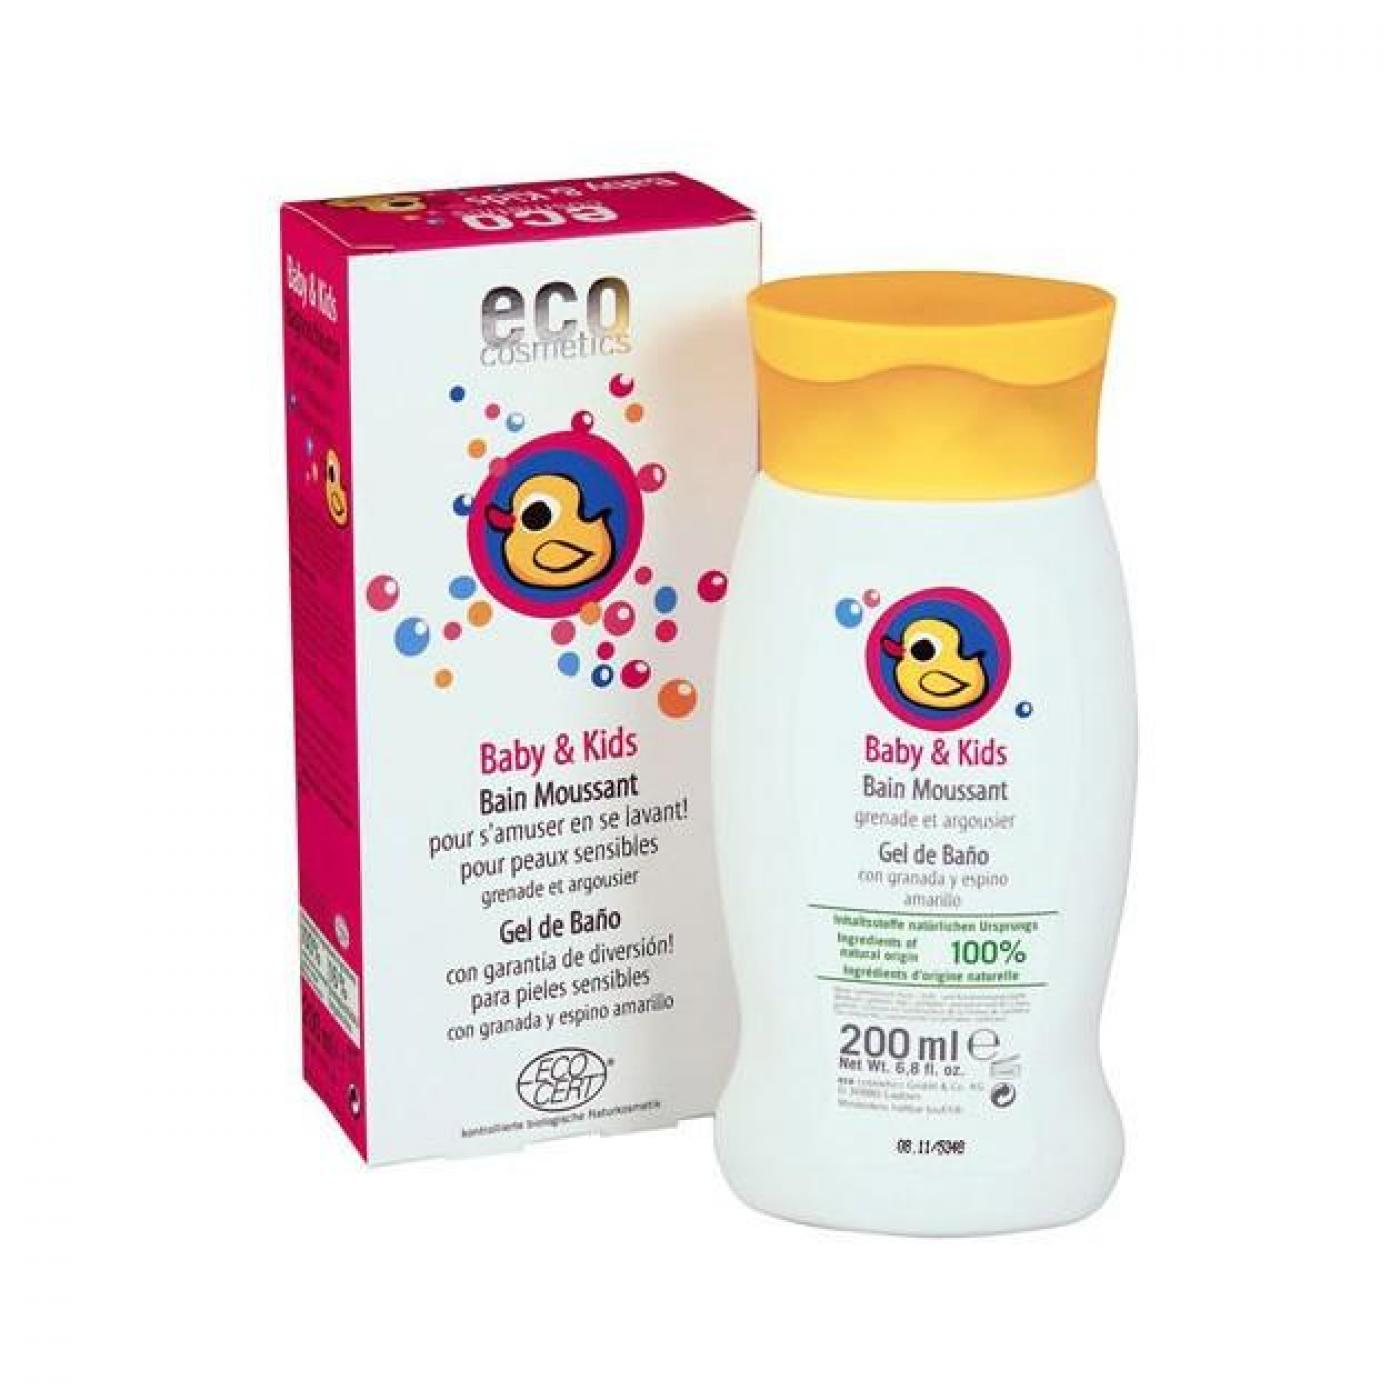 gel de bain pour b b s et enfants ecocosmetics 200 ml sur planeta huerto. Black Bedroom Furniture Sets. Home Design Ideas